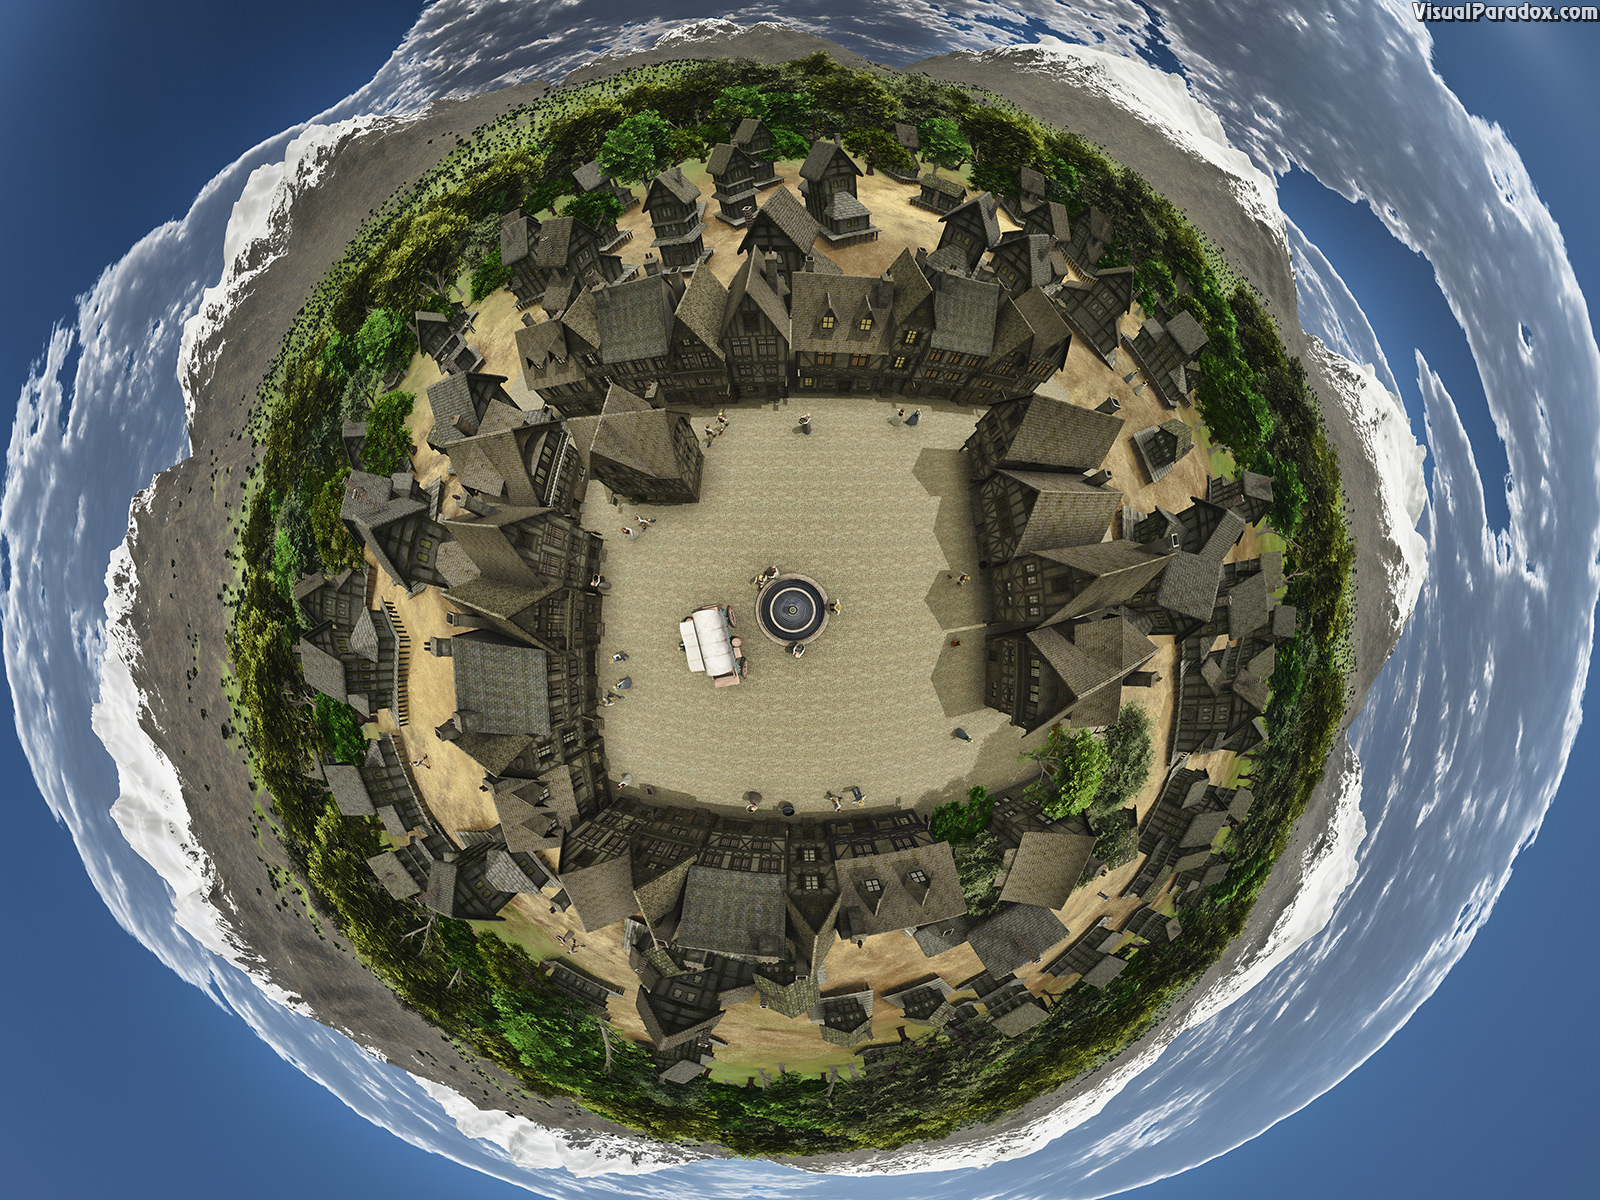 360, abstract, aerial, air, architecture, atmosphere, ball, blue, building, buildings, burg, circle, city, cloud, concept, construction, cottage, curve, day, design, earth, environment, forest, global, globe, green, hamlet, home, house, human, idyllic, illustration, land, life, light, map, medieval, nature, neighborhood, new, panoramic, planet, scene, sky, small, space, sphere, spherical, summer, symbol, town, travel, tree, view, village, world, 3d, wallpaper